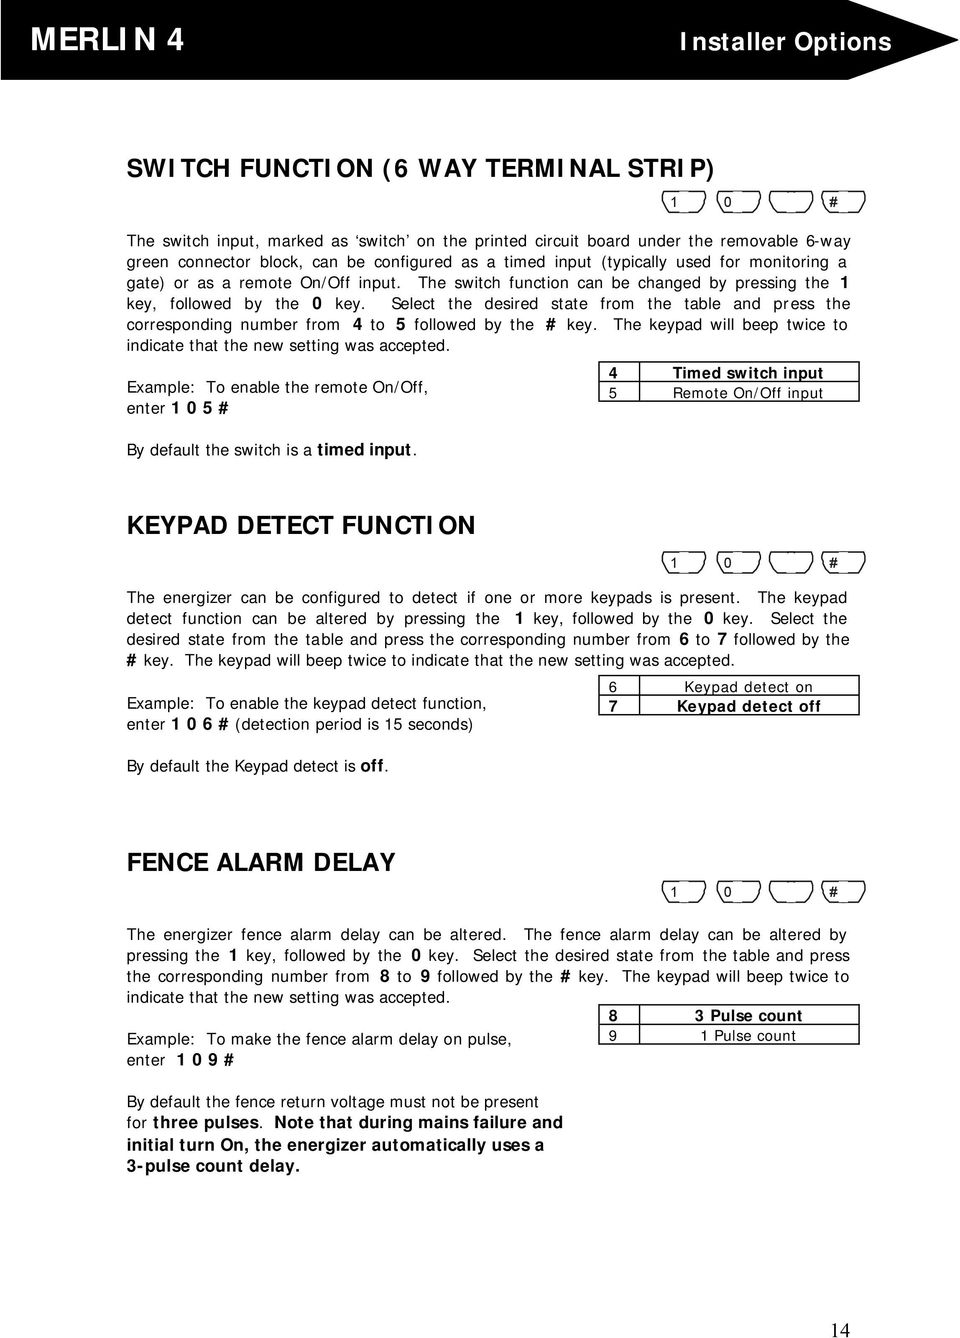 Electric Fence Energiser Pdf Mains Powered Energizers Select The Desired State From Table And Press Corresponding Number 4 To 5